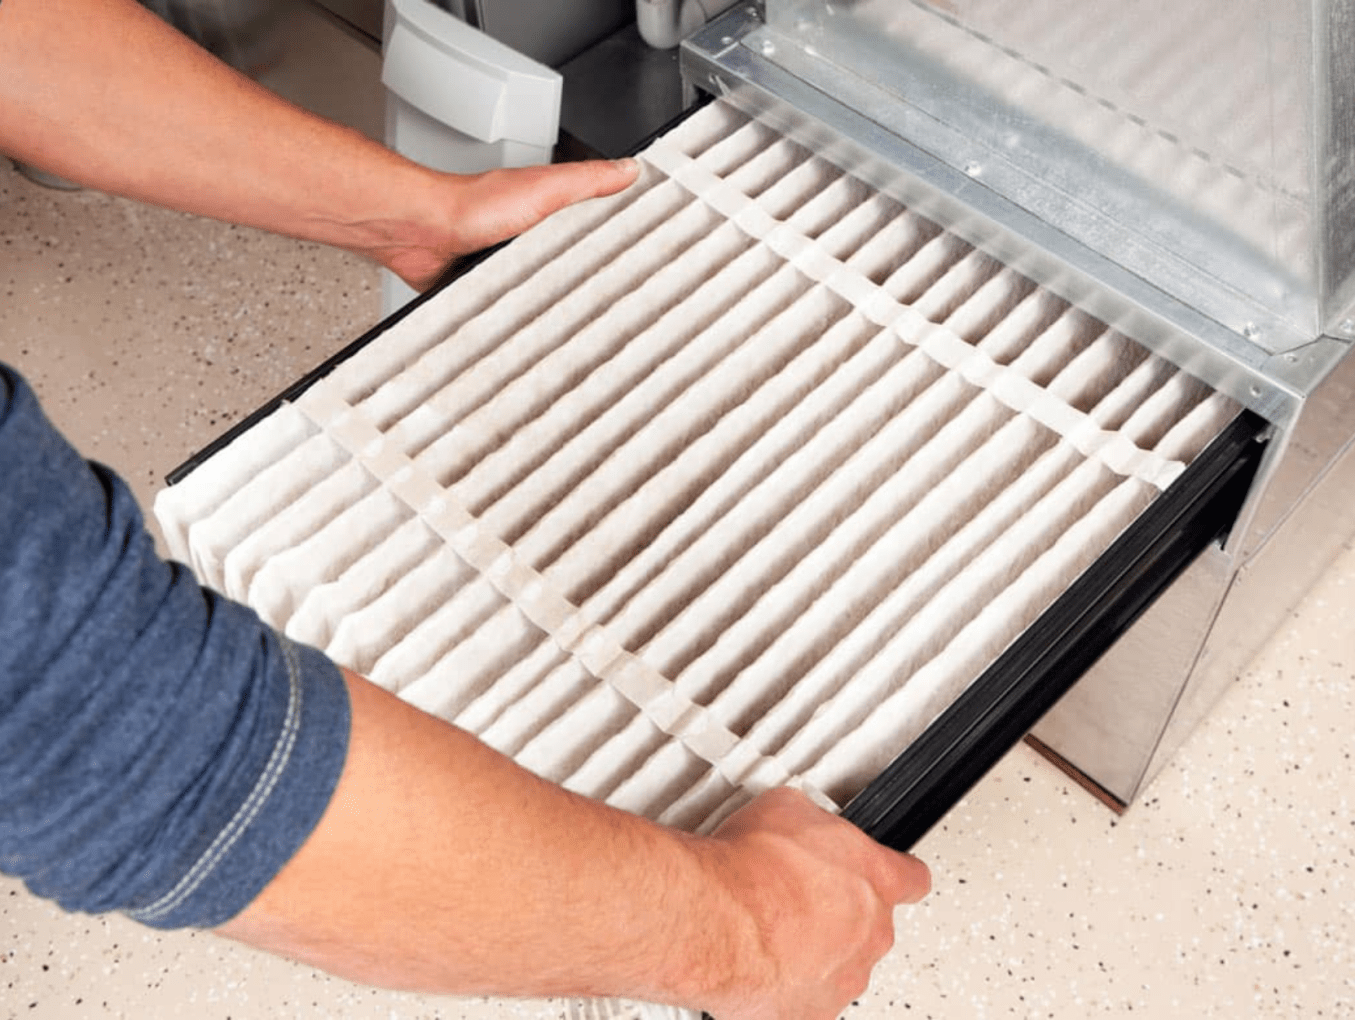 Fall Furnace Settings for Fresher, Safer, More Affordable Indoor Air